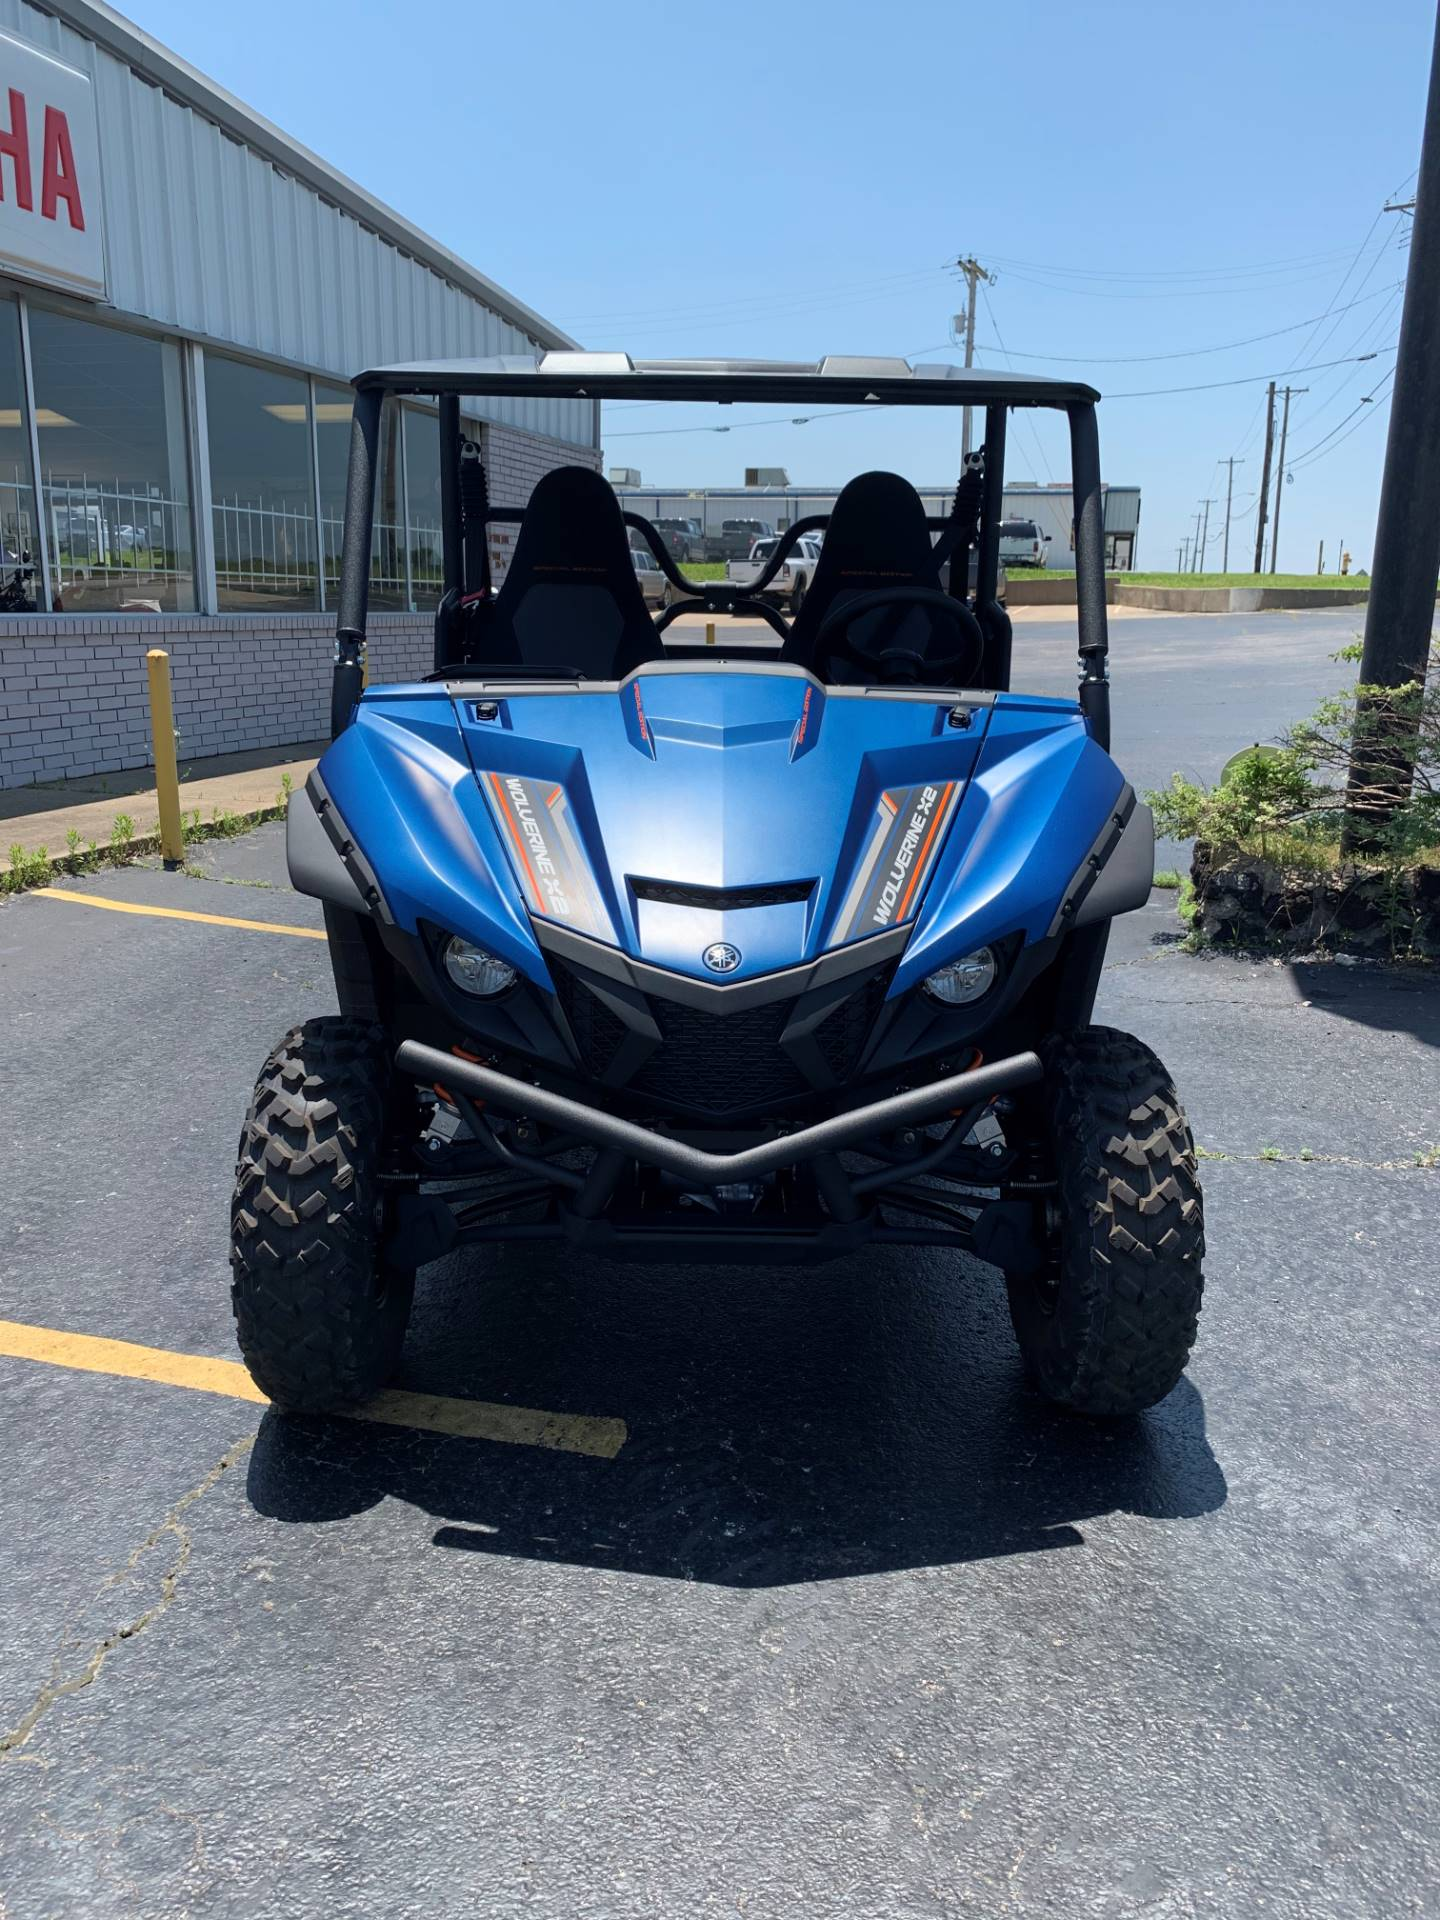 2019 Yamaha Wolverine X2 R-Spec SE in Tulsa, Oklahoma - Photo 2